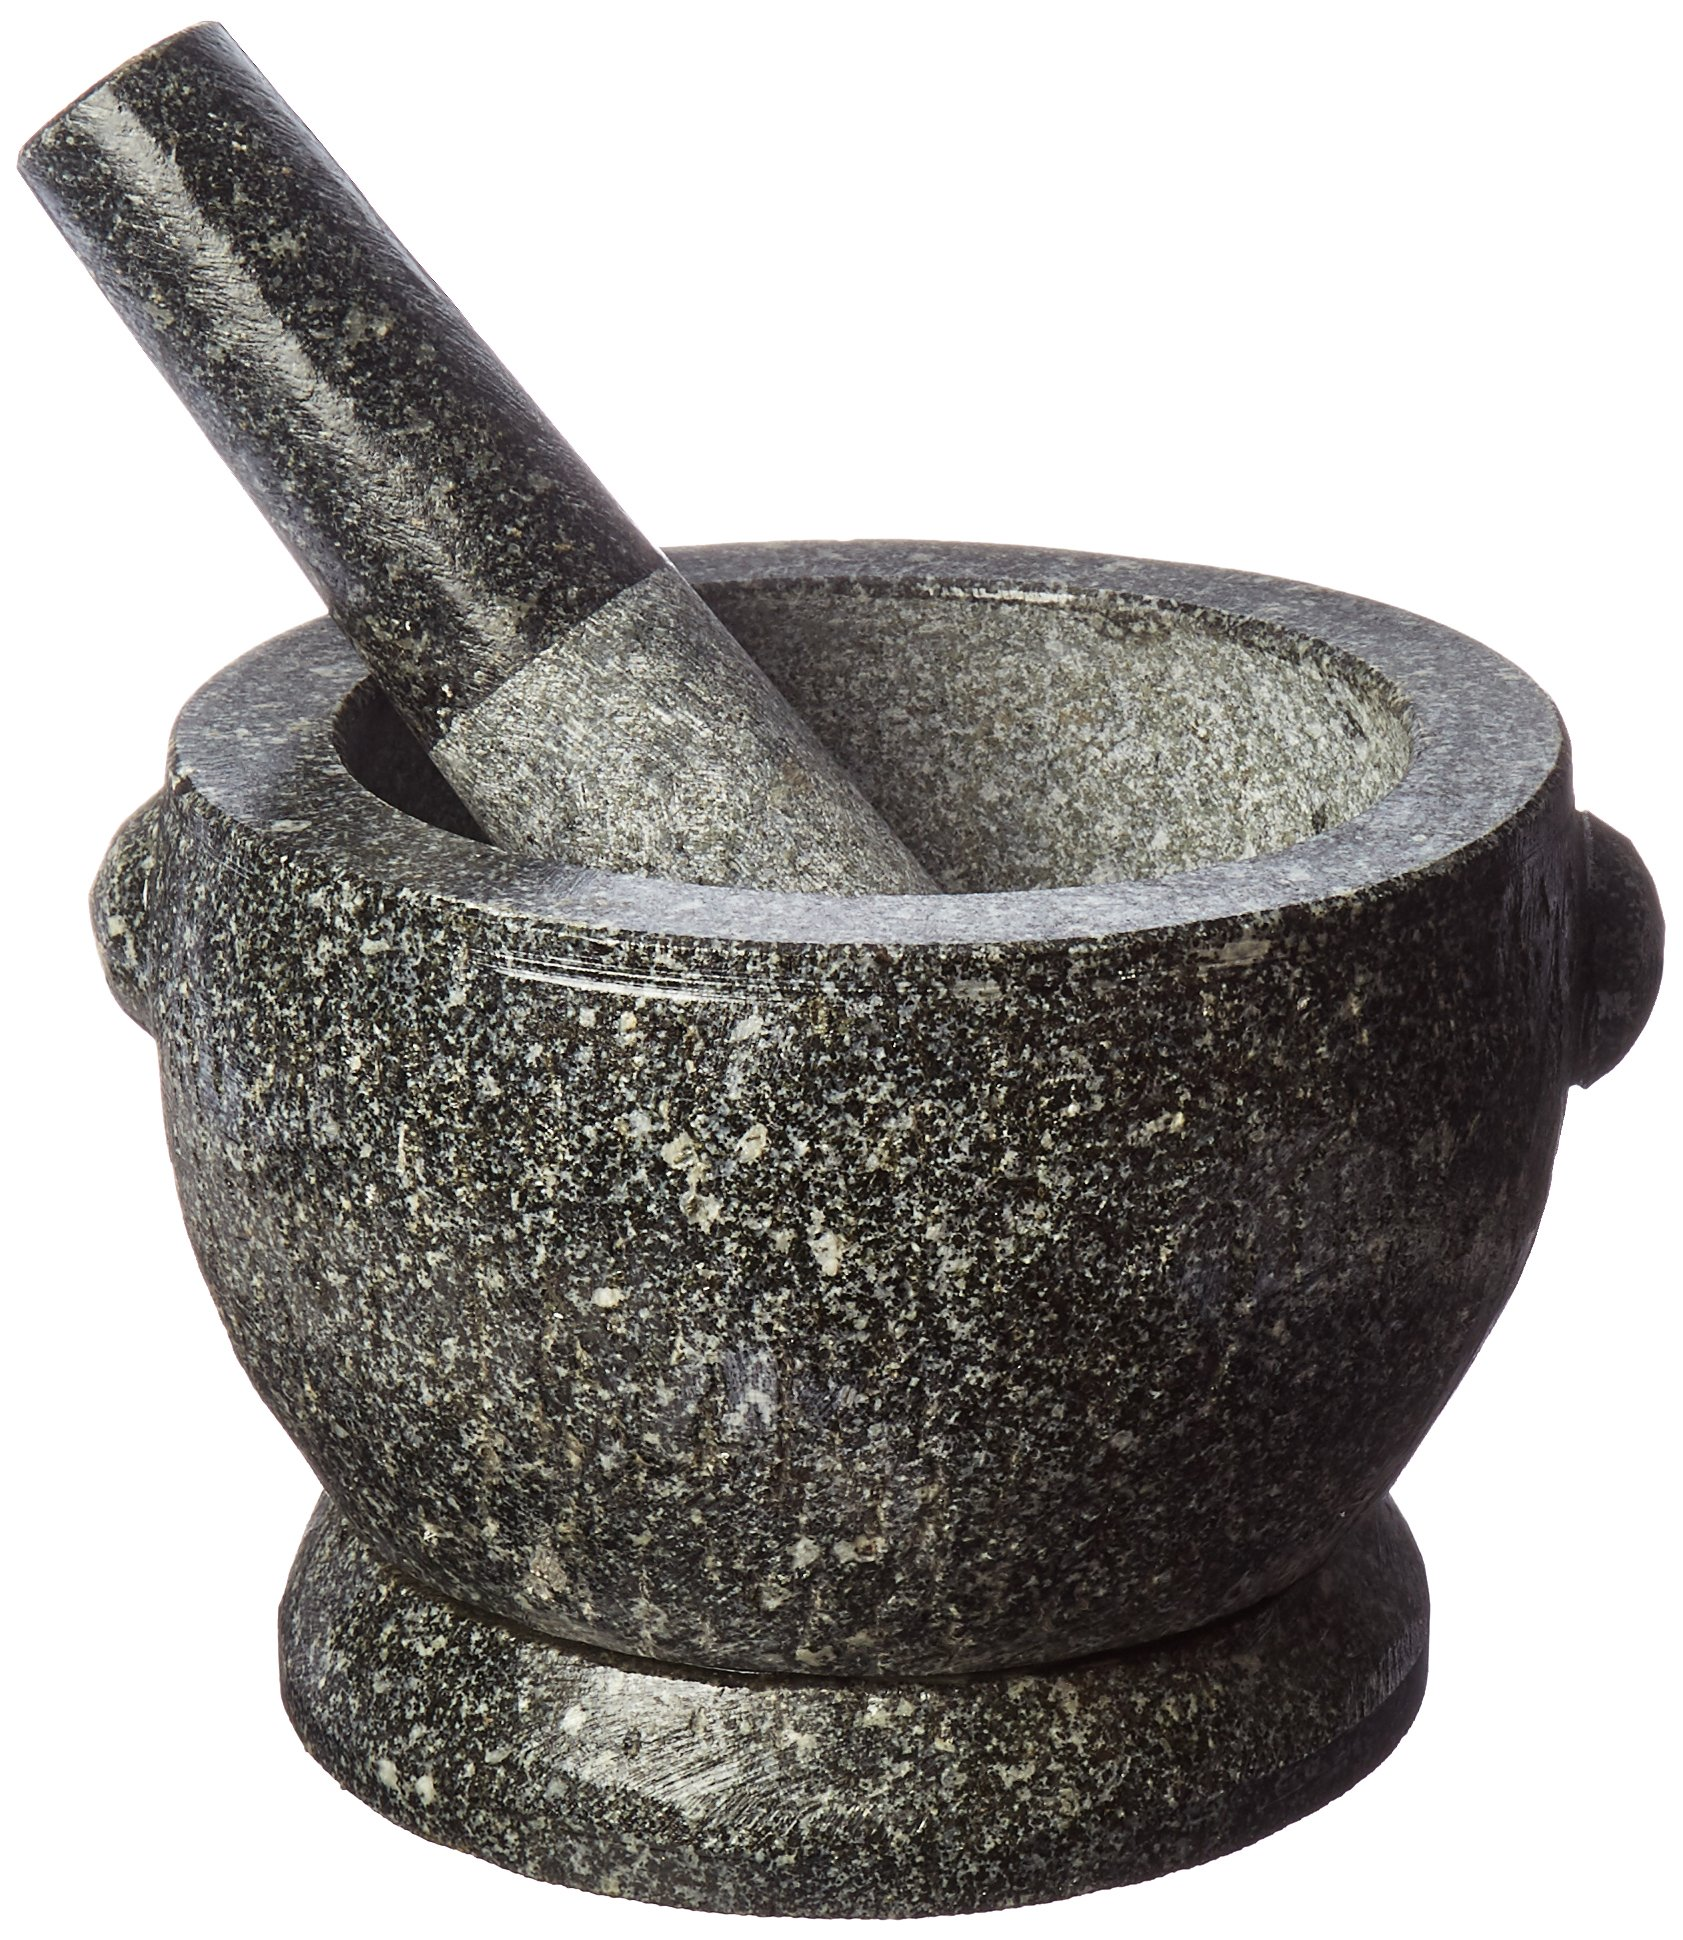 Large 8 Thai Granite Mortar and Pestle and The proper view by TastePadThai